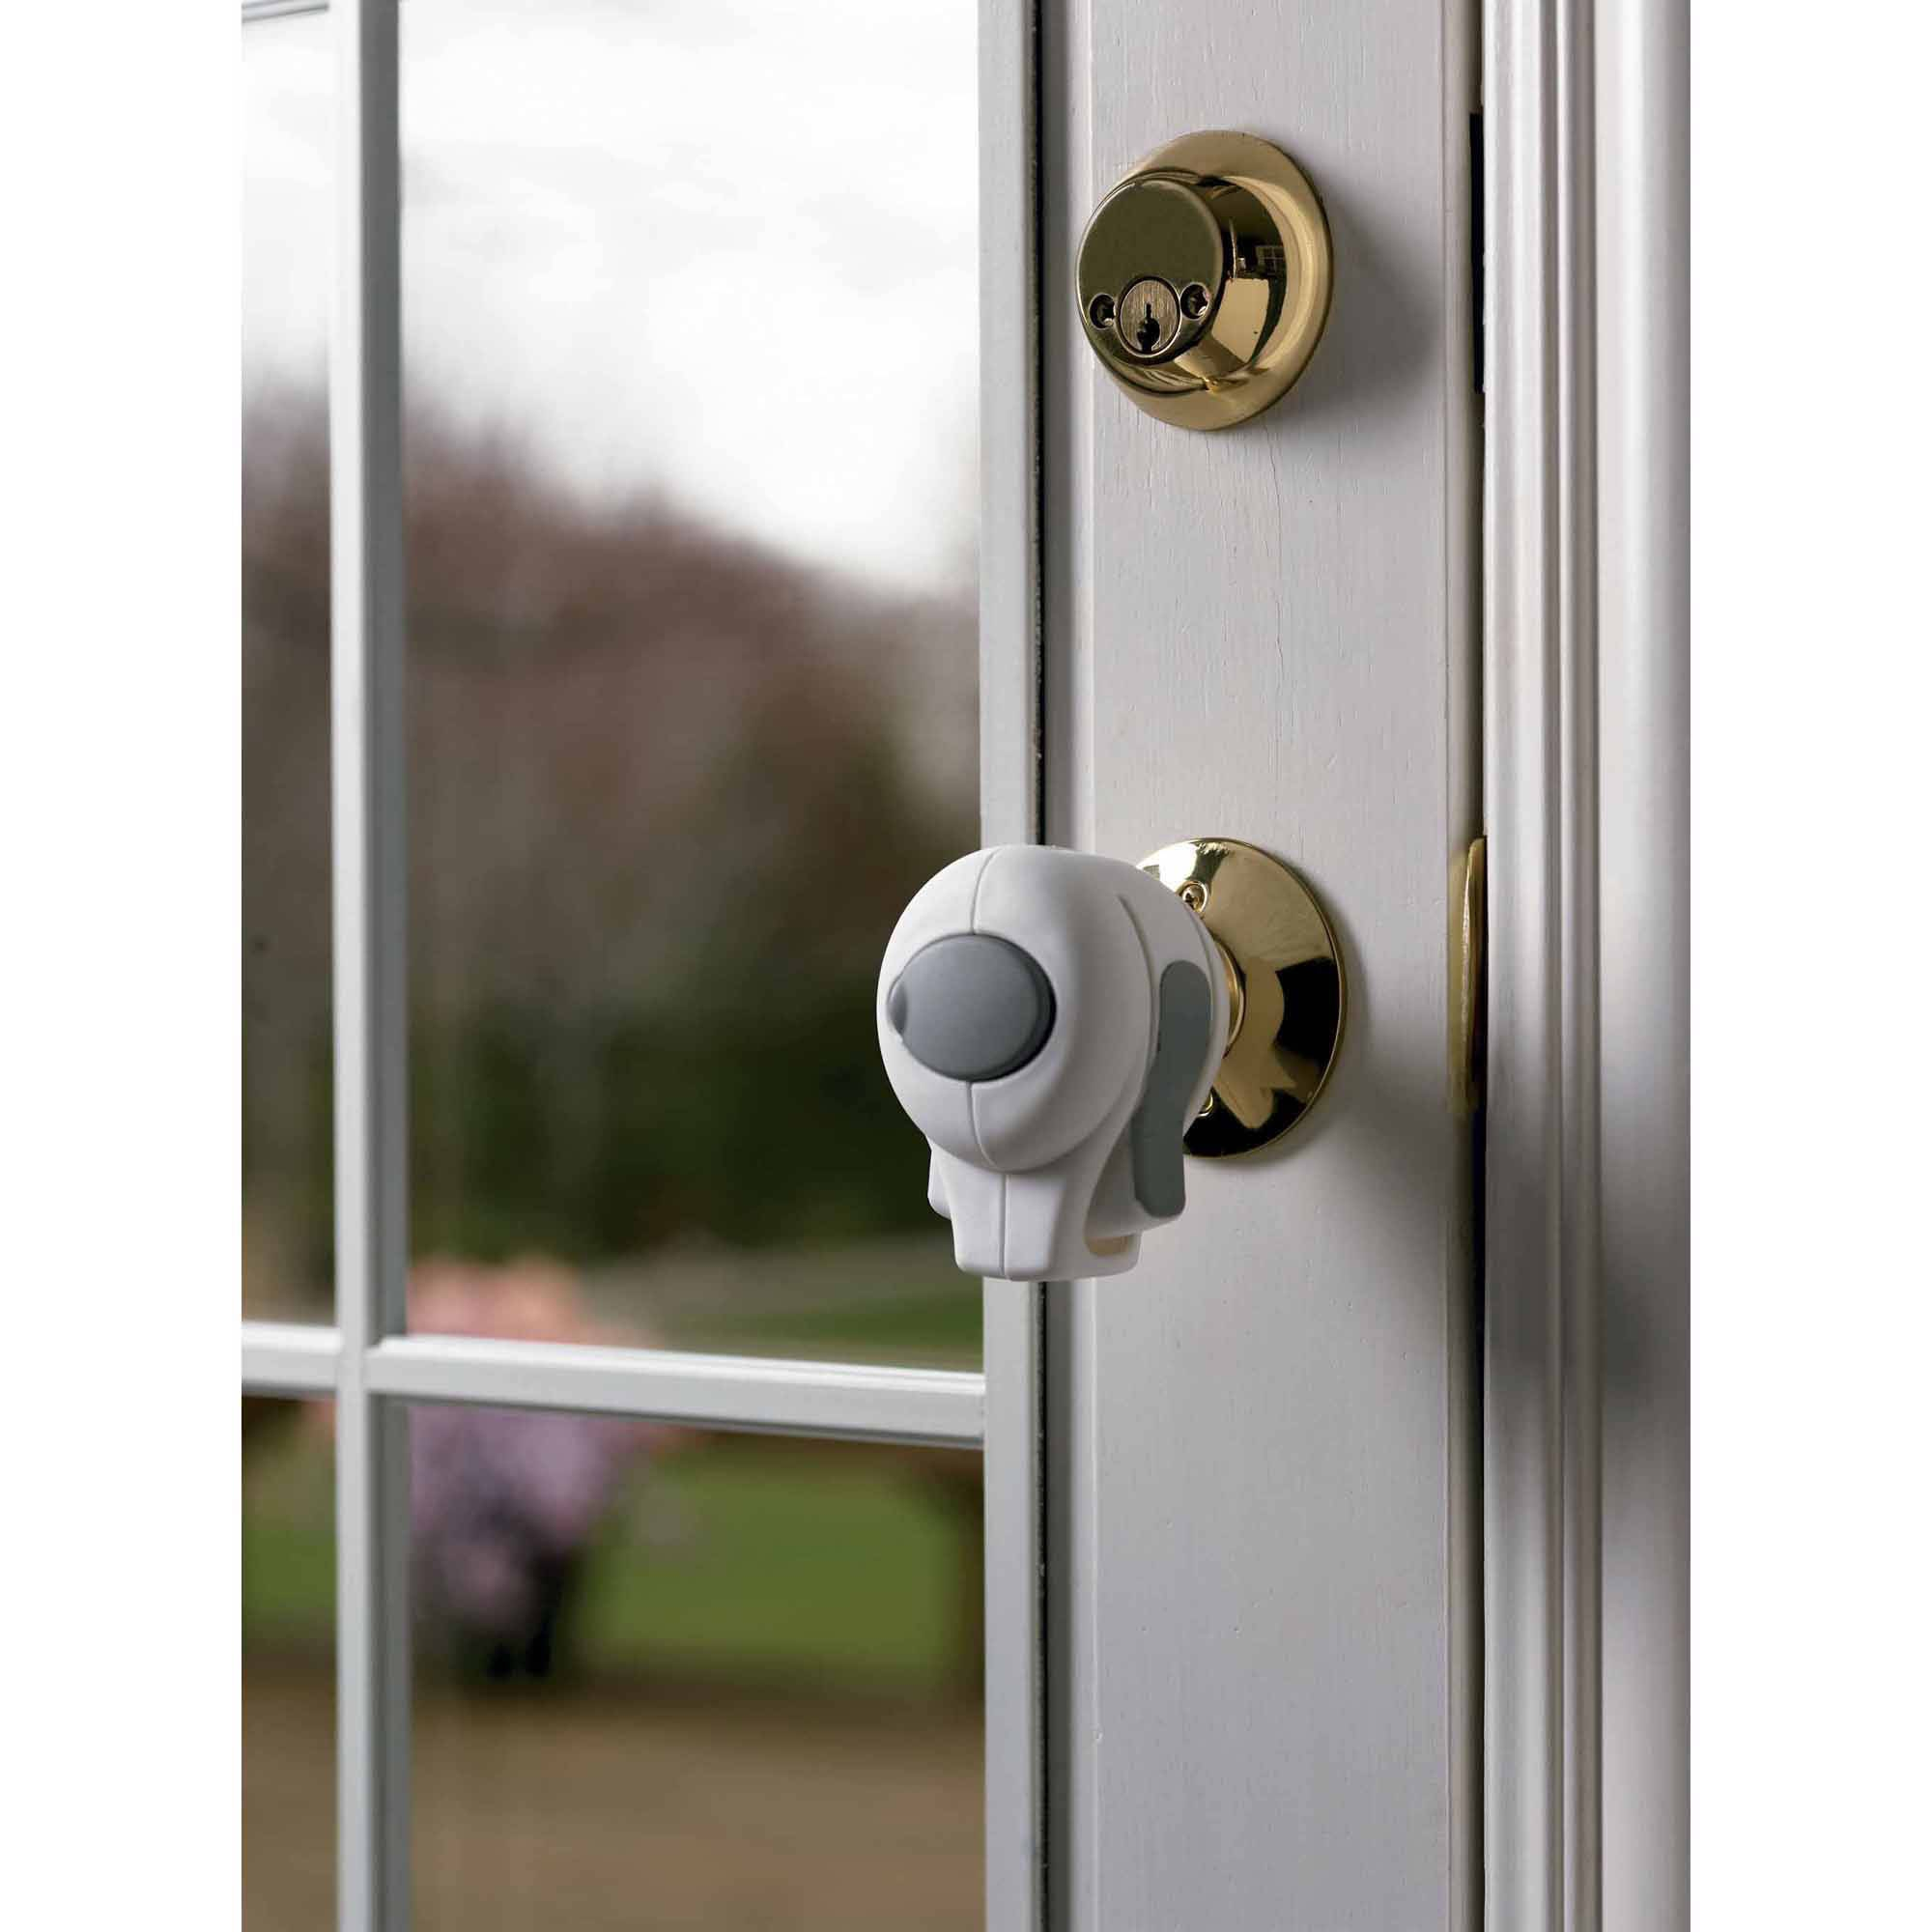 Best Door Knob Locksbedroom adorable door locks and handles garage door lock best